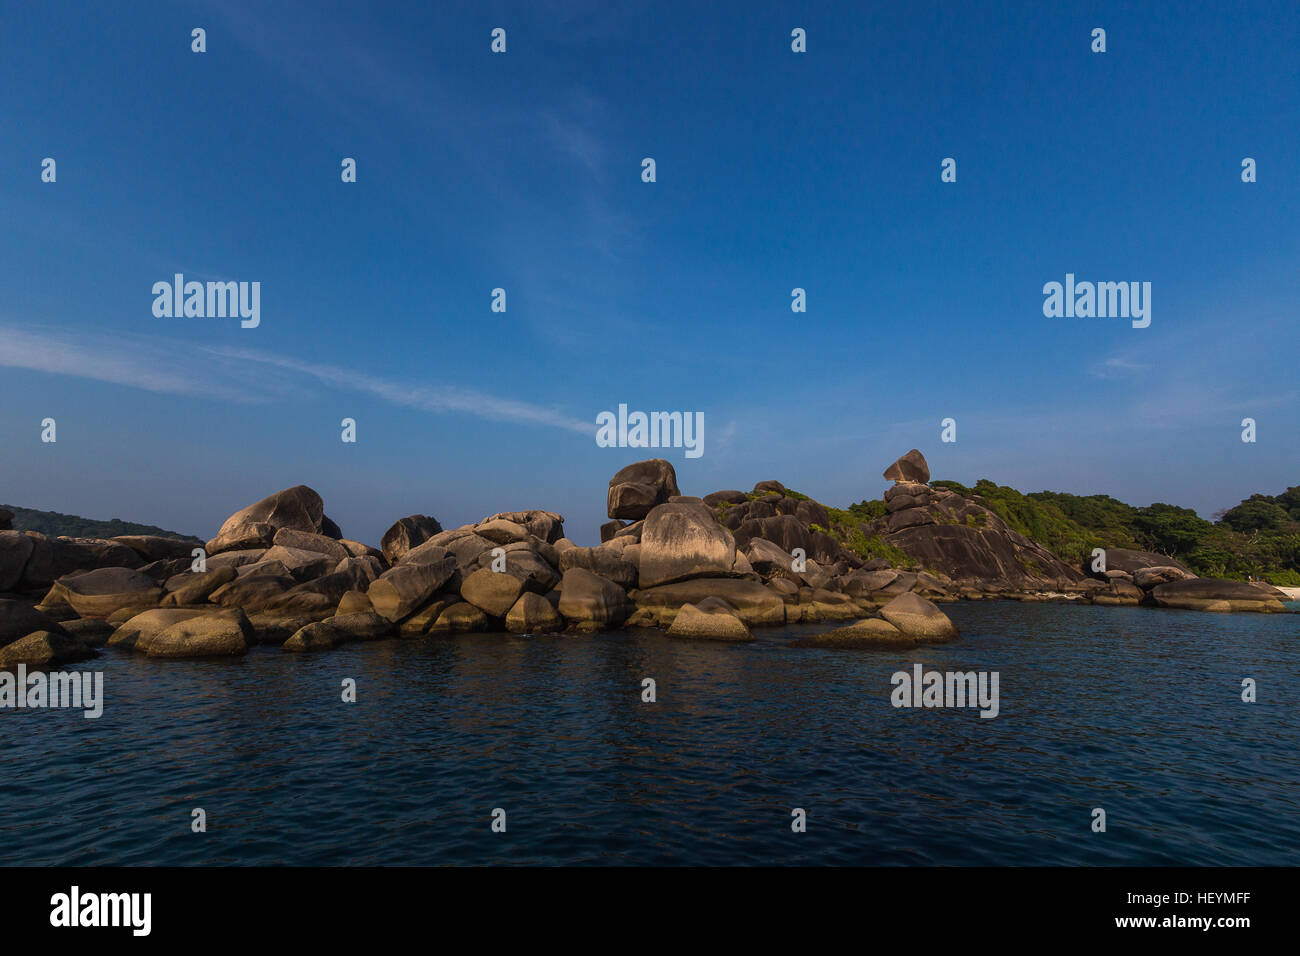 Viewpoint of Similan Islands National Park - Stock Image